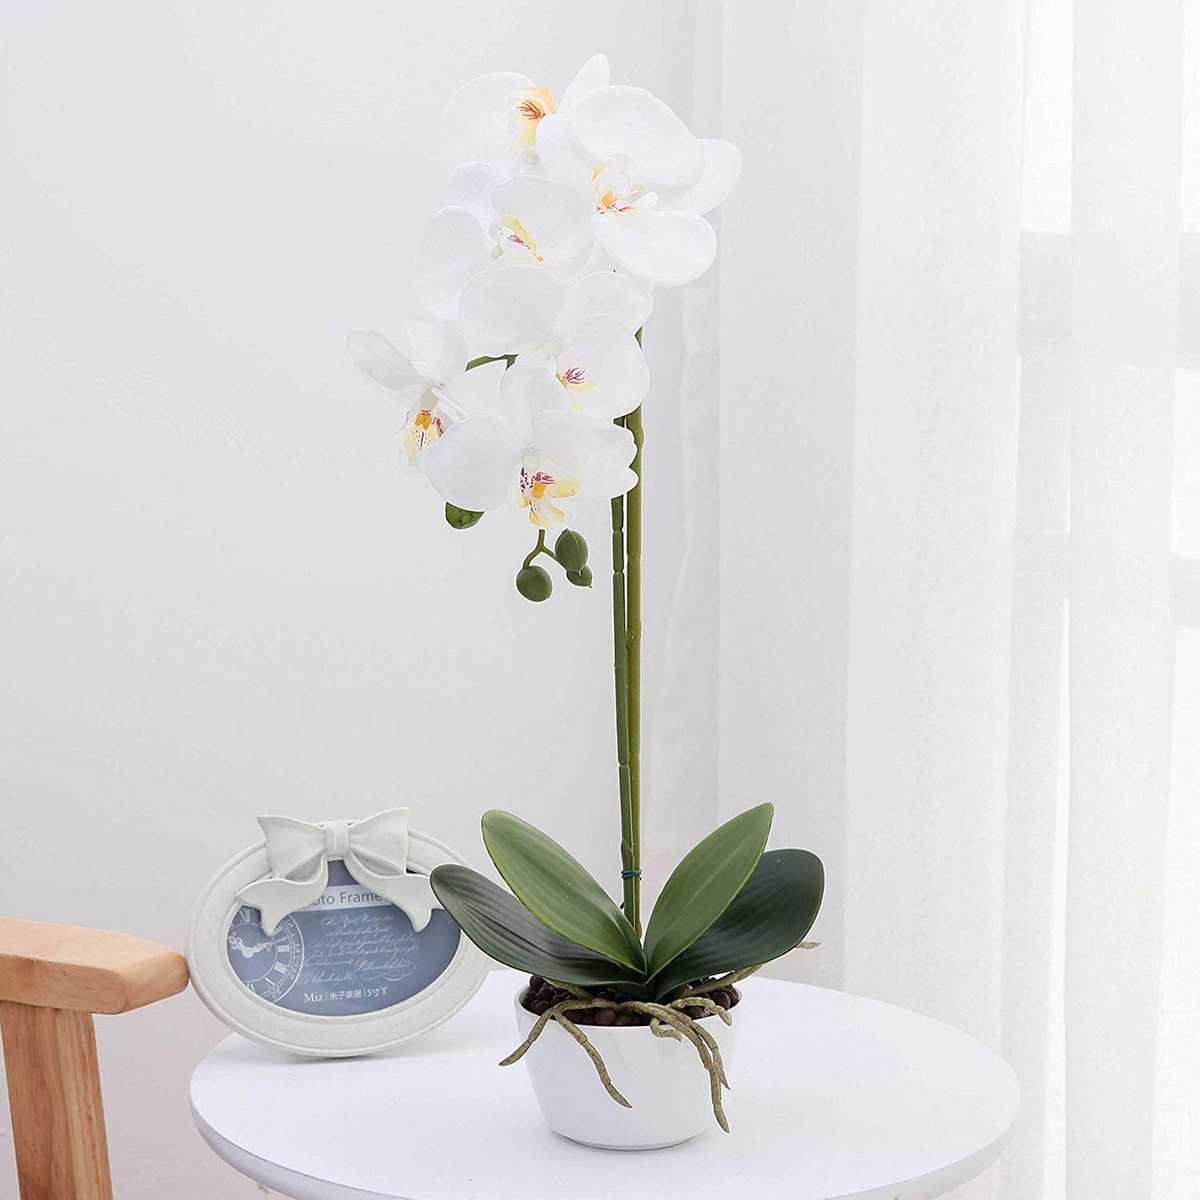 A potted plant with white flowers sits on a round white table.